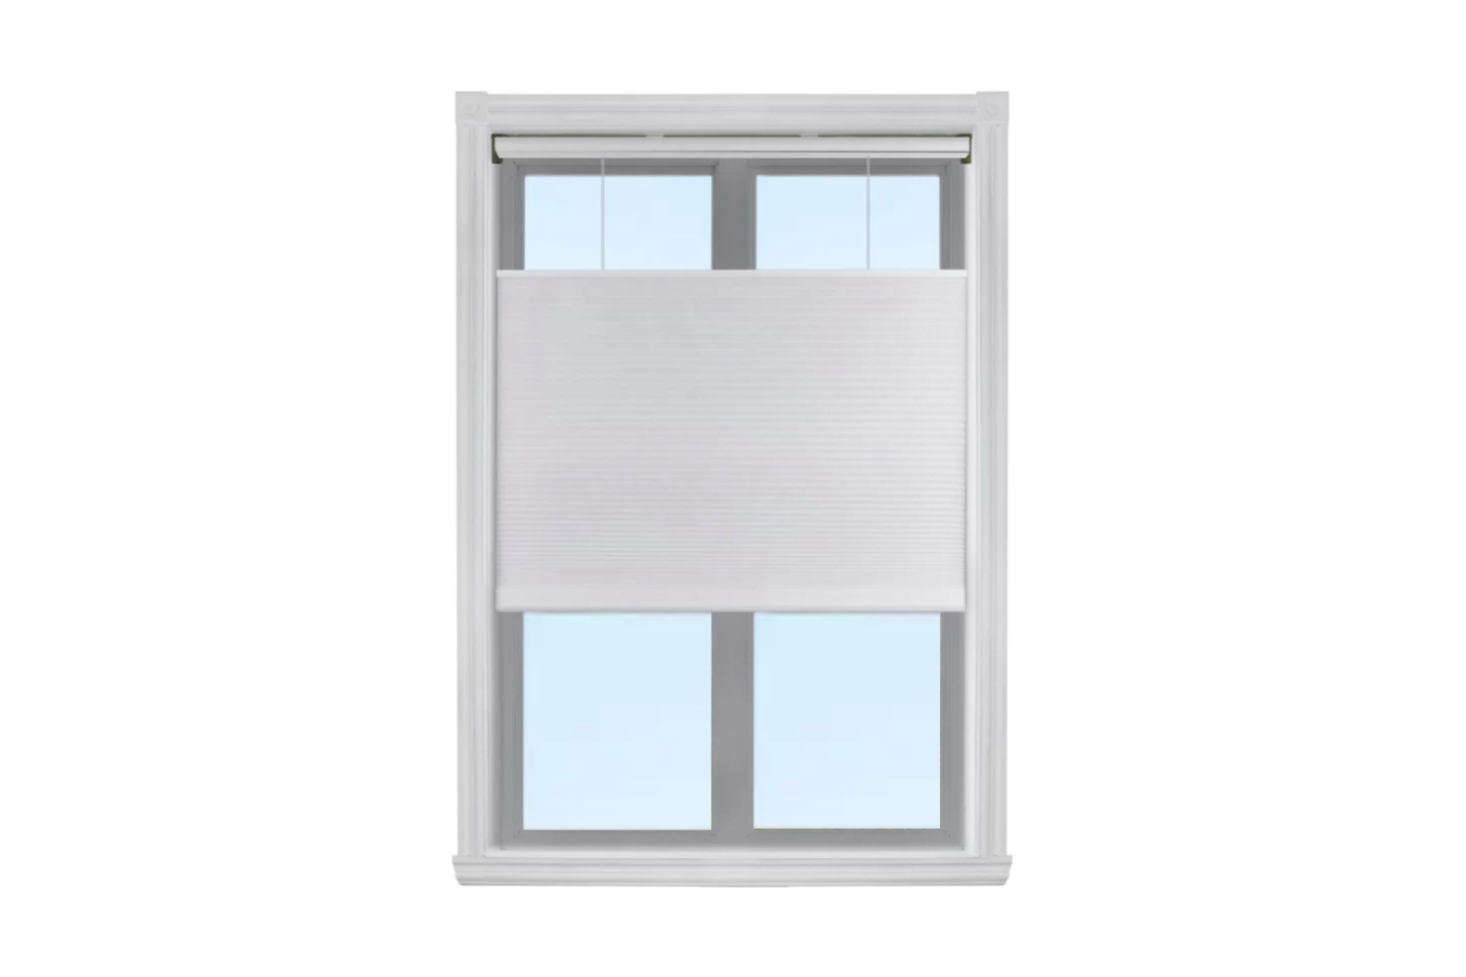 The Top Down Bottom Up Semi-Sheer White Cellular Shade from Symple Stuff starts at $47.99 at Wayfair.